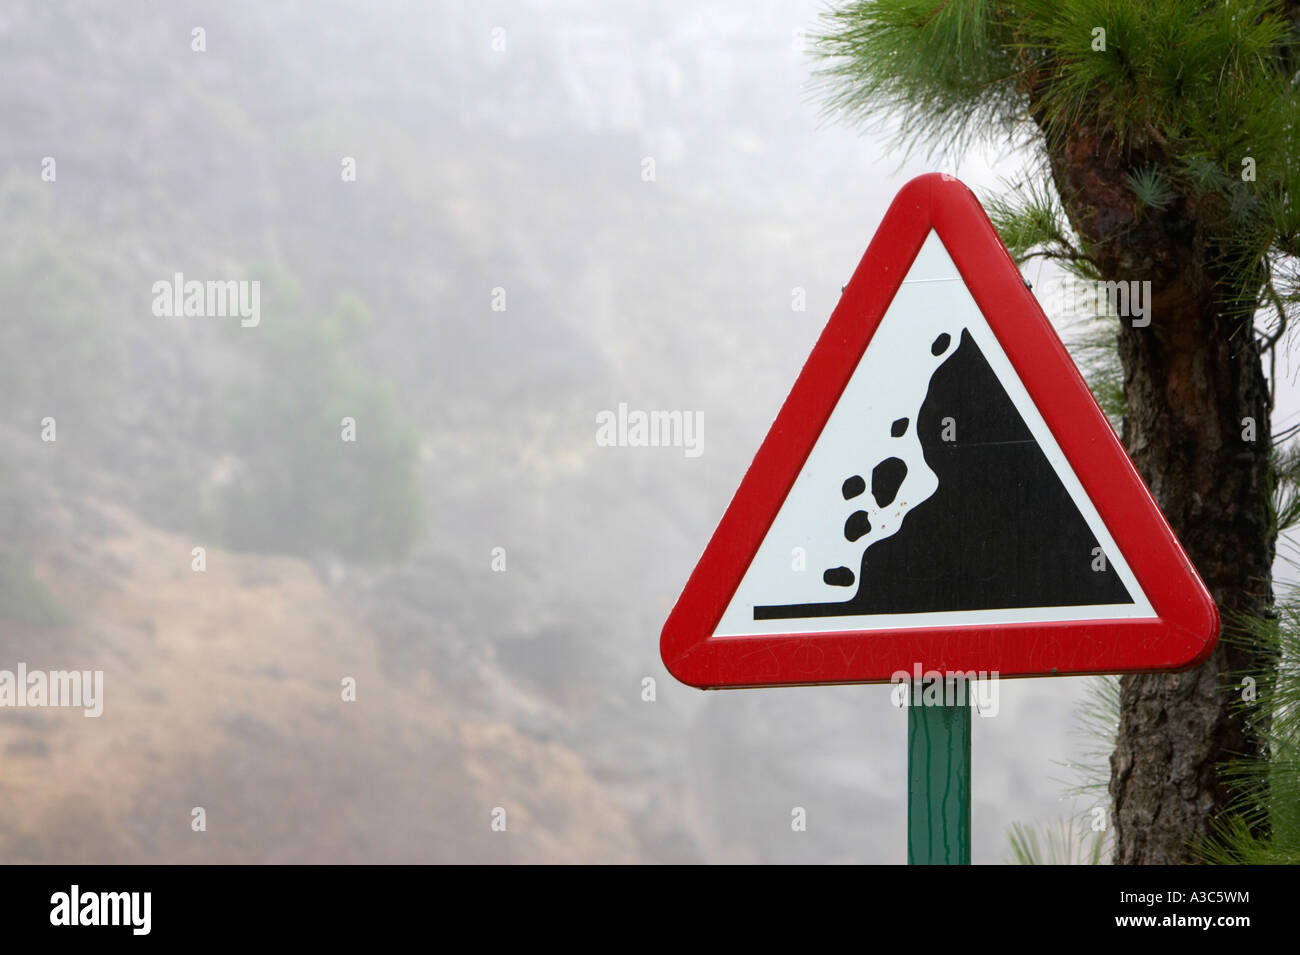 loose falling rocks warning triangular roadsign on the mountain road to El Teide Tenerife Canary Islands Spain - Stock Image